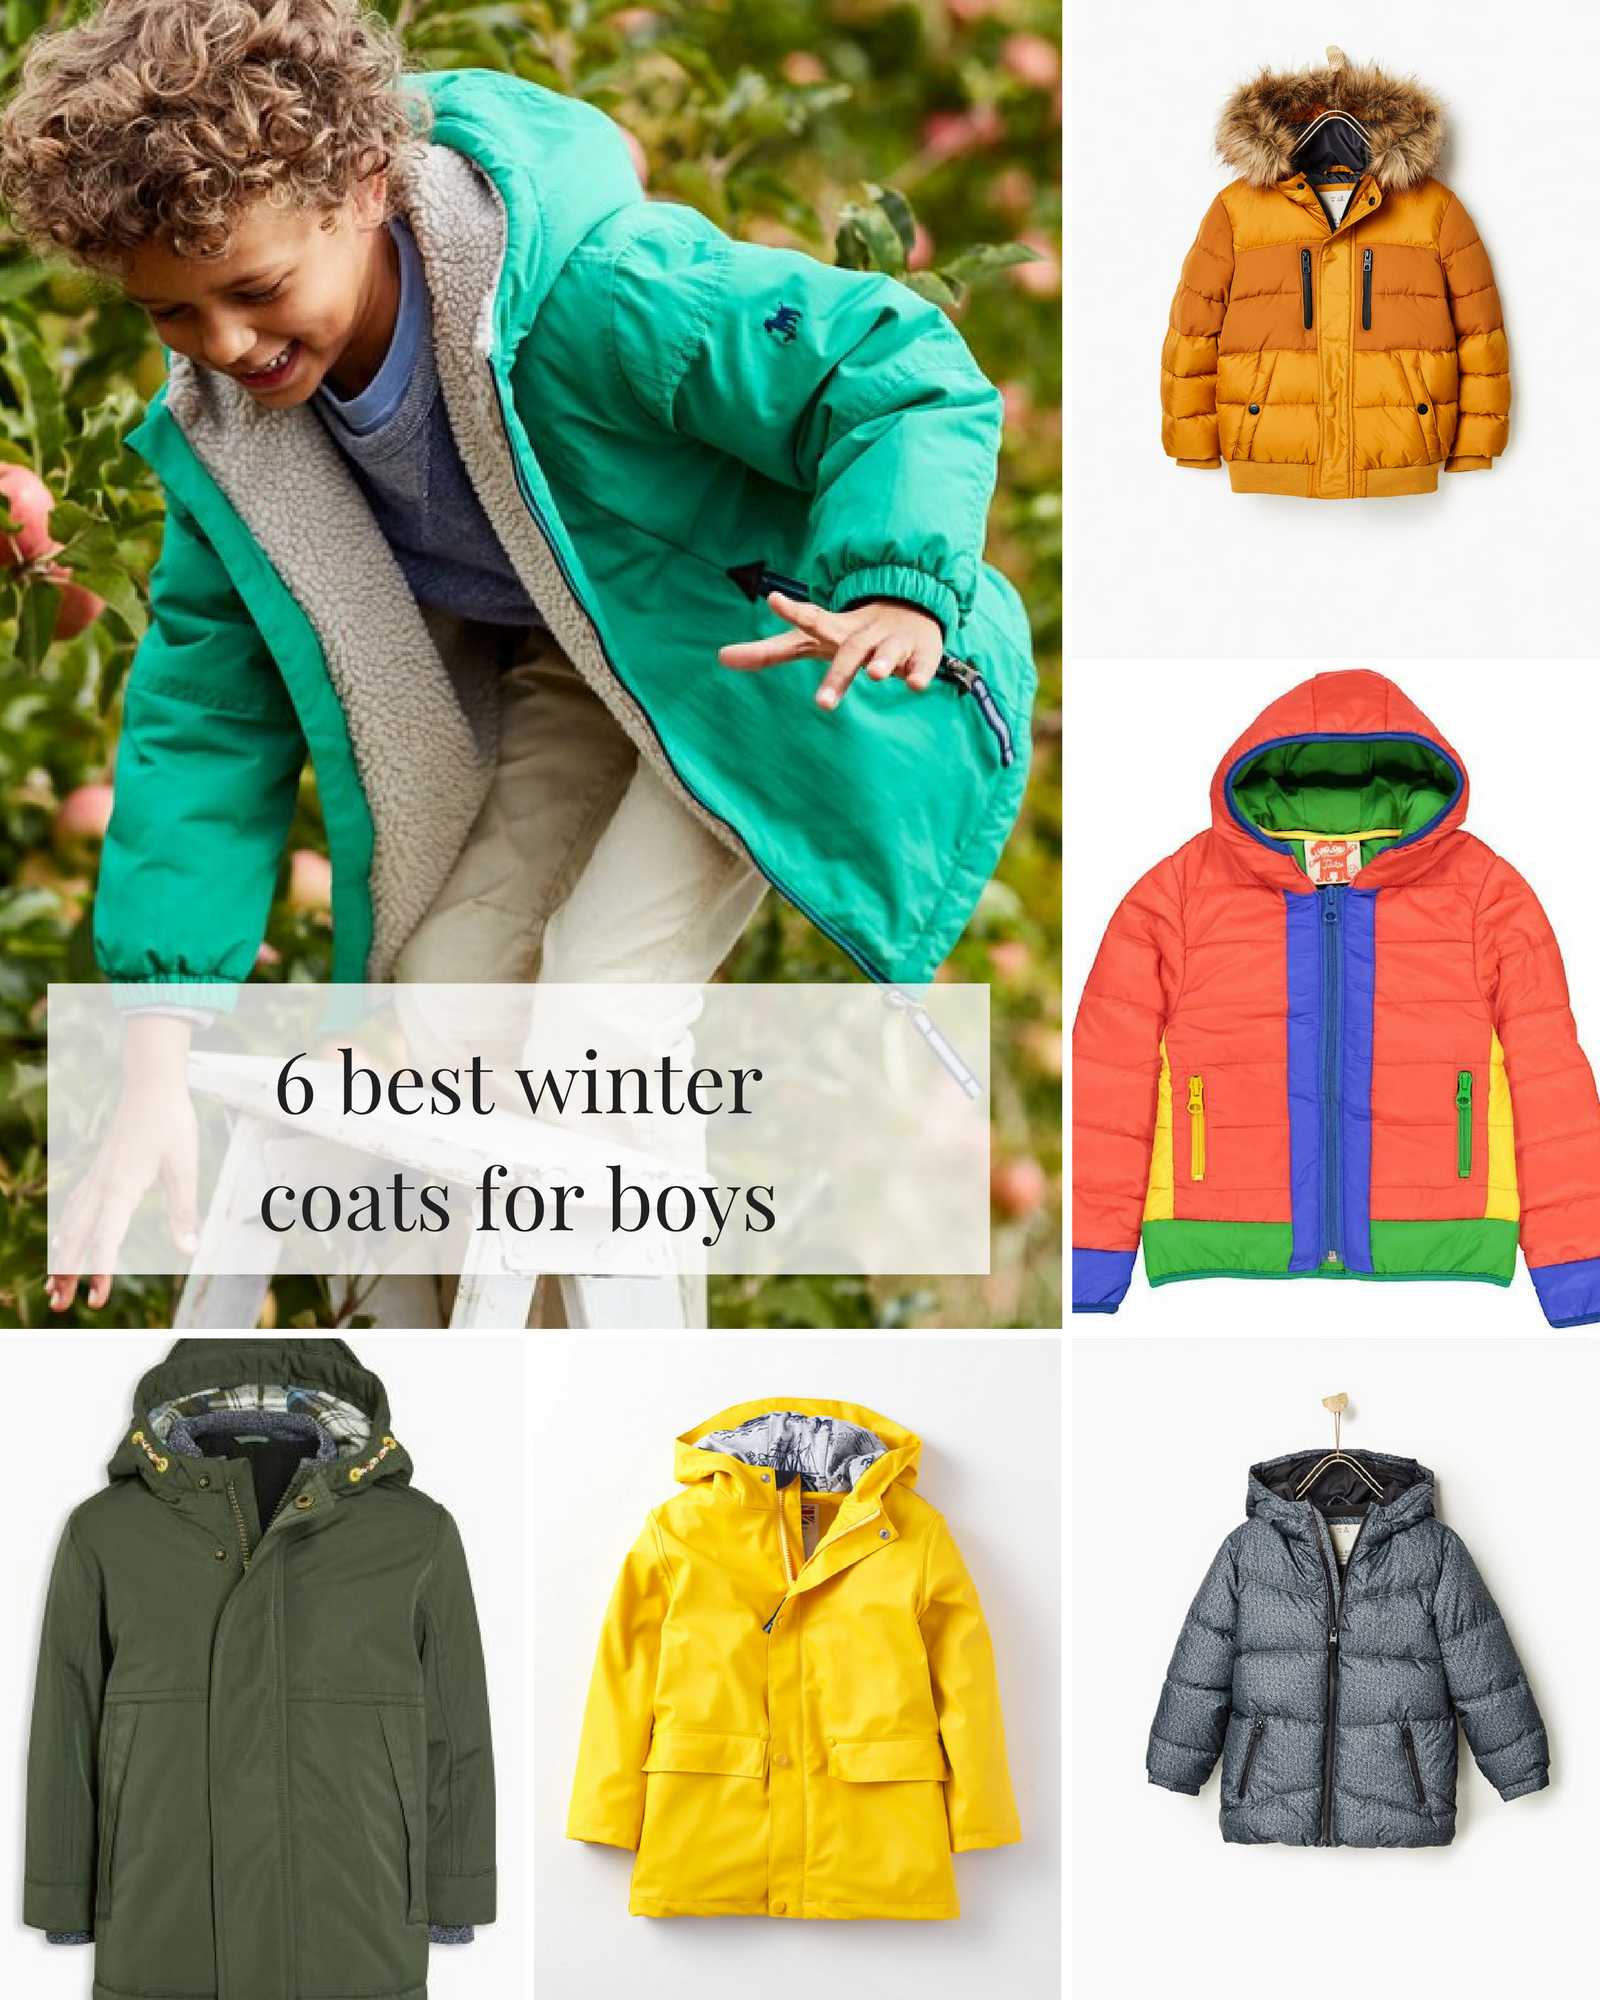 6 best winter coats for boys